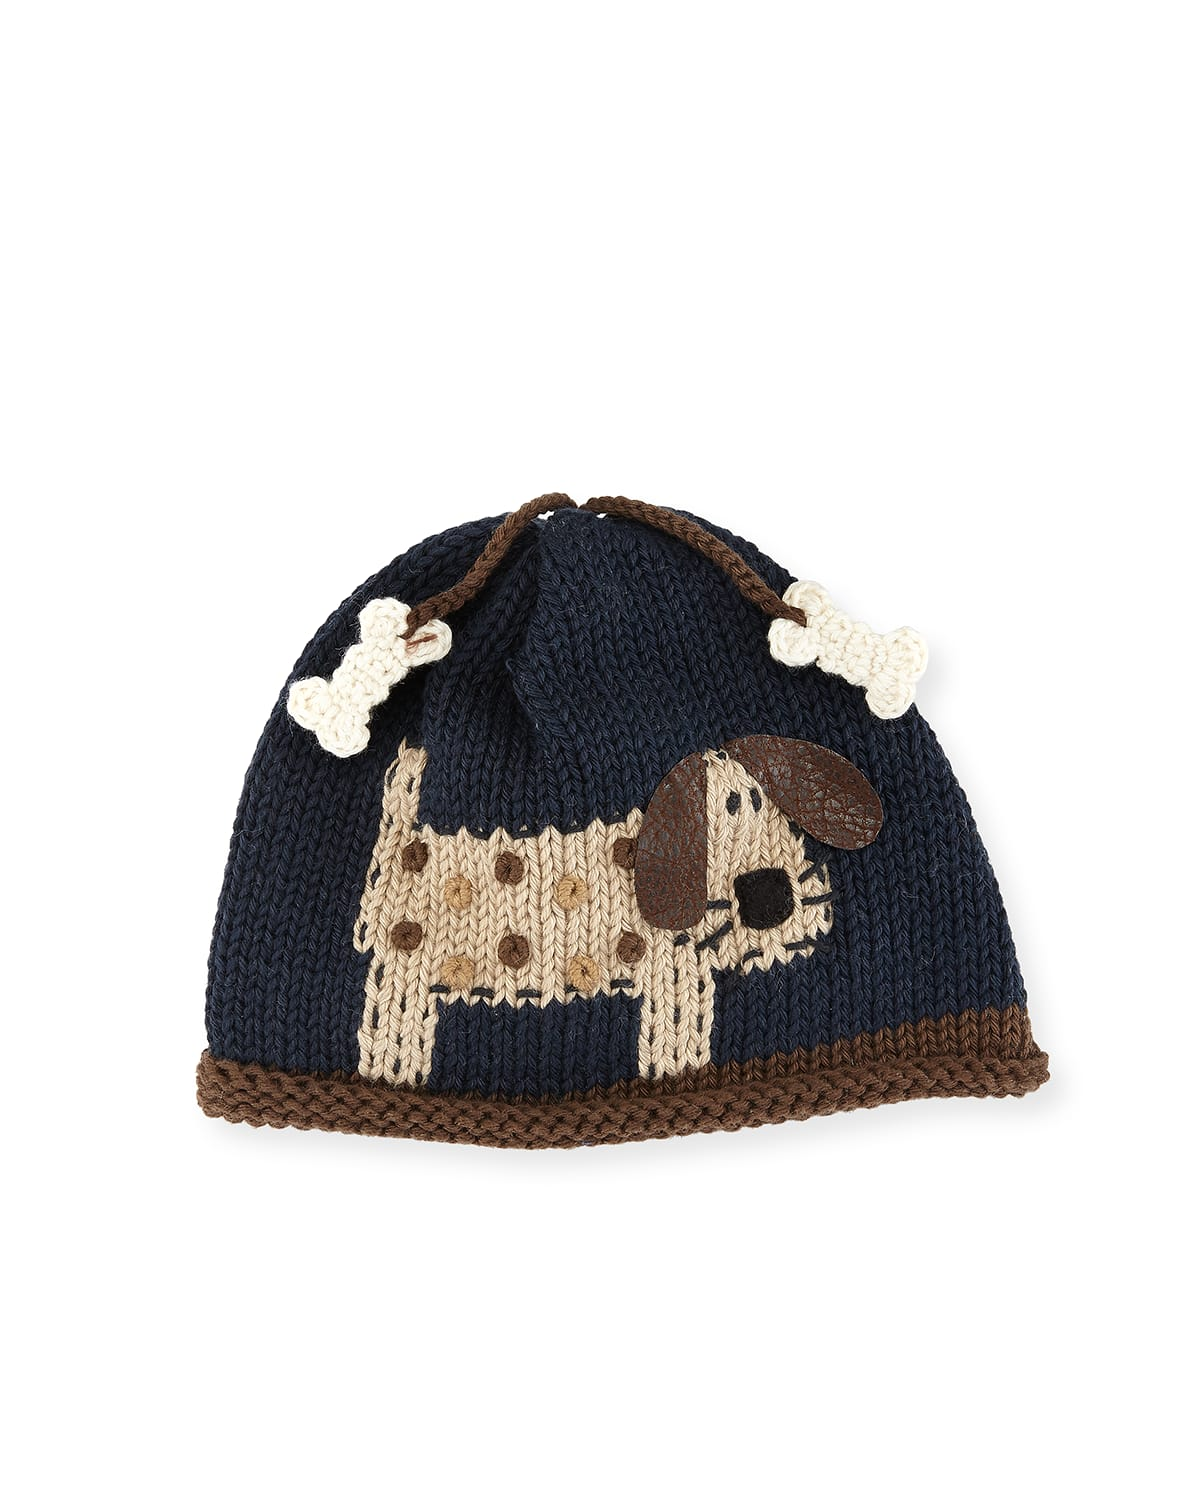 Woof Woof Knit Baby Hat